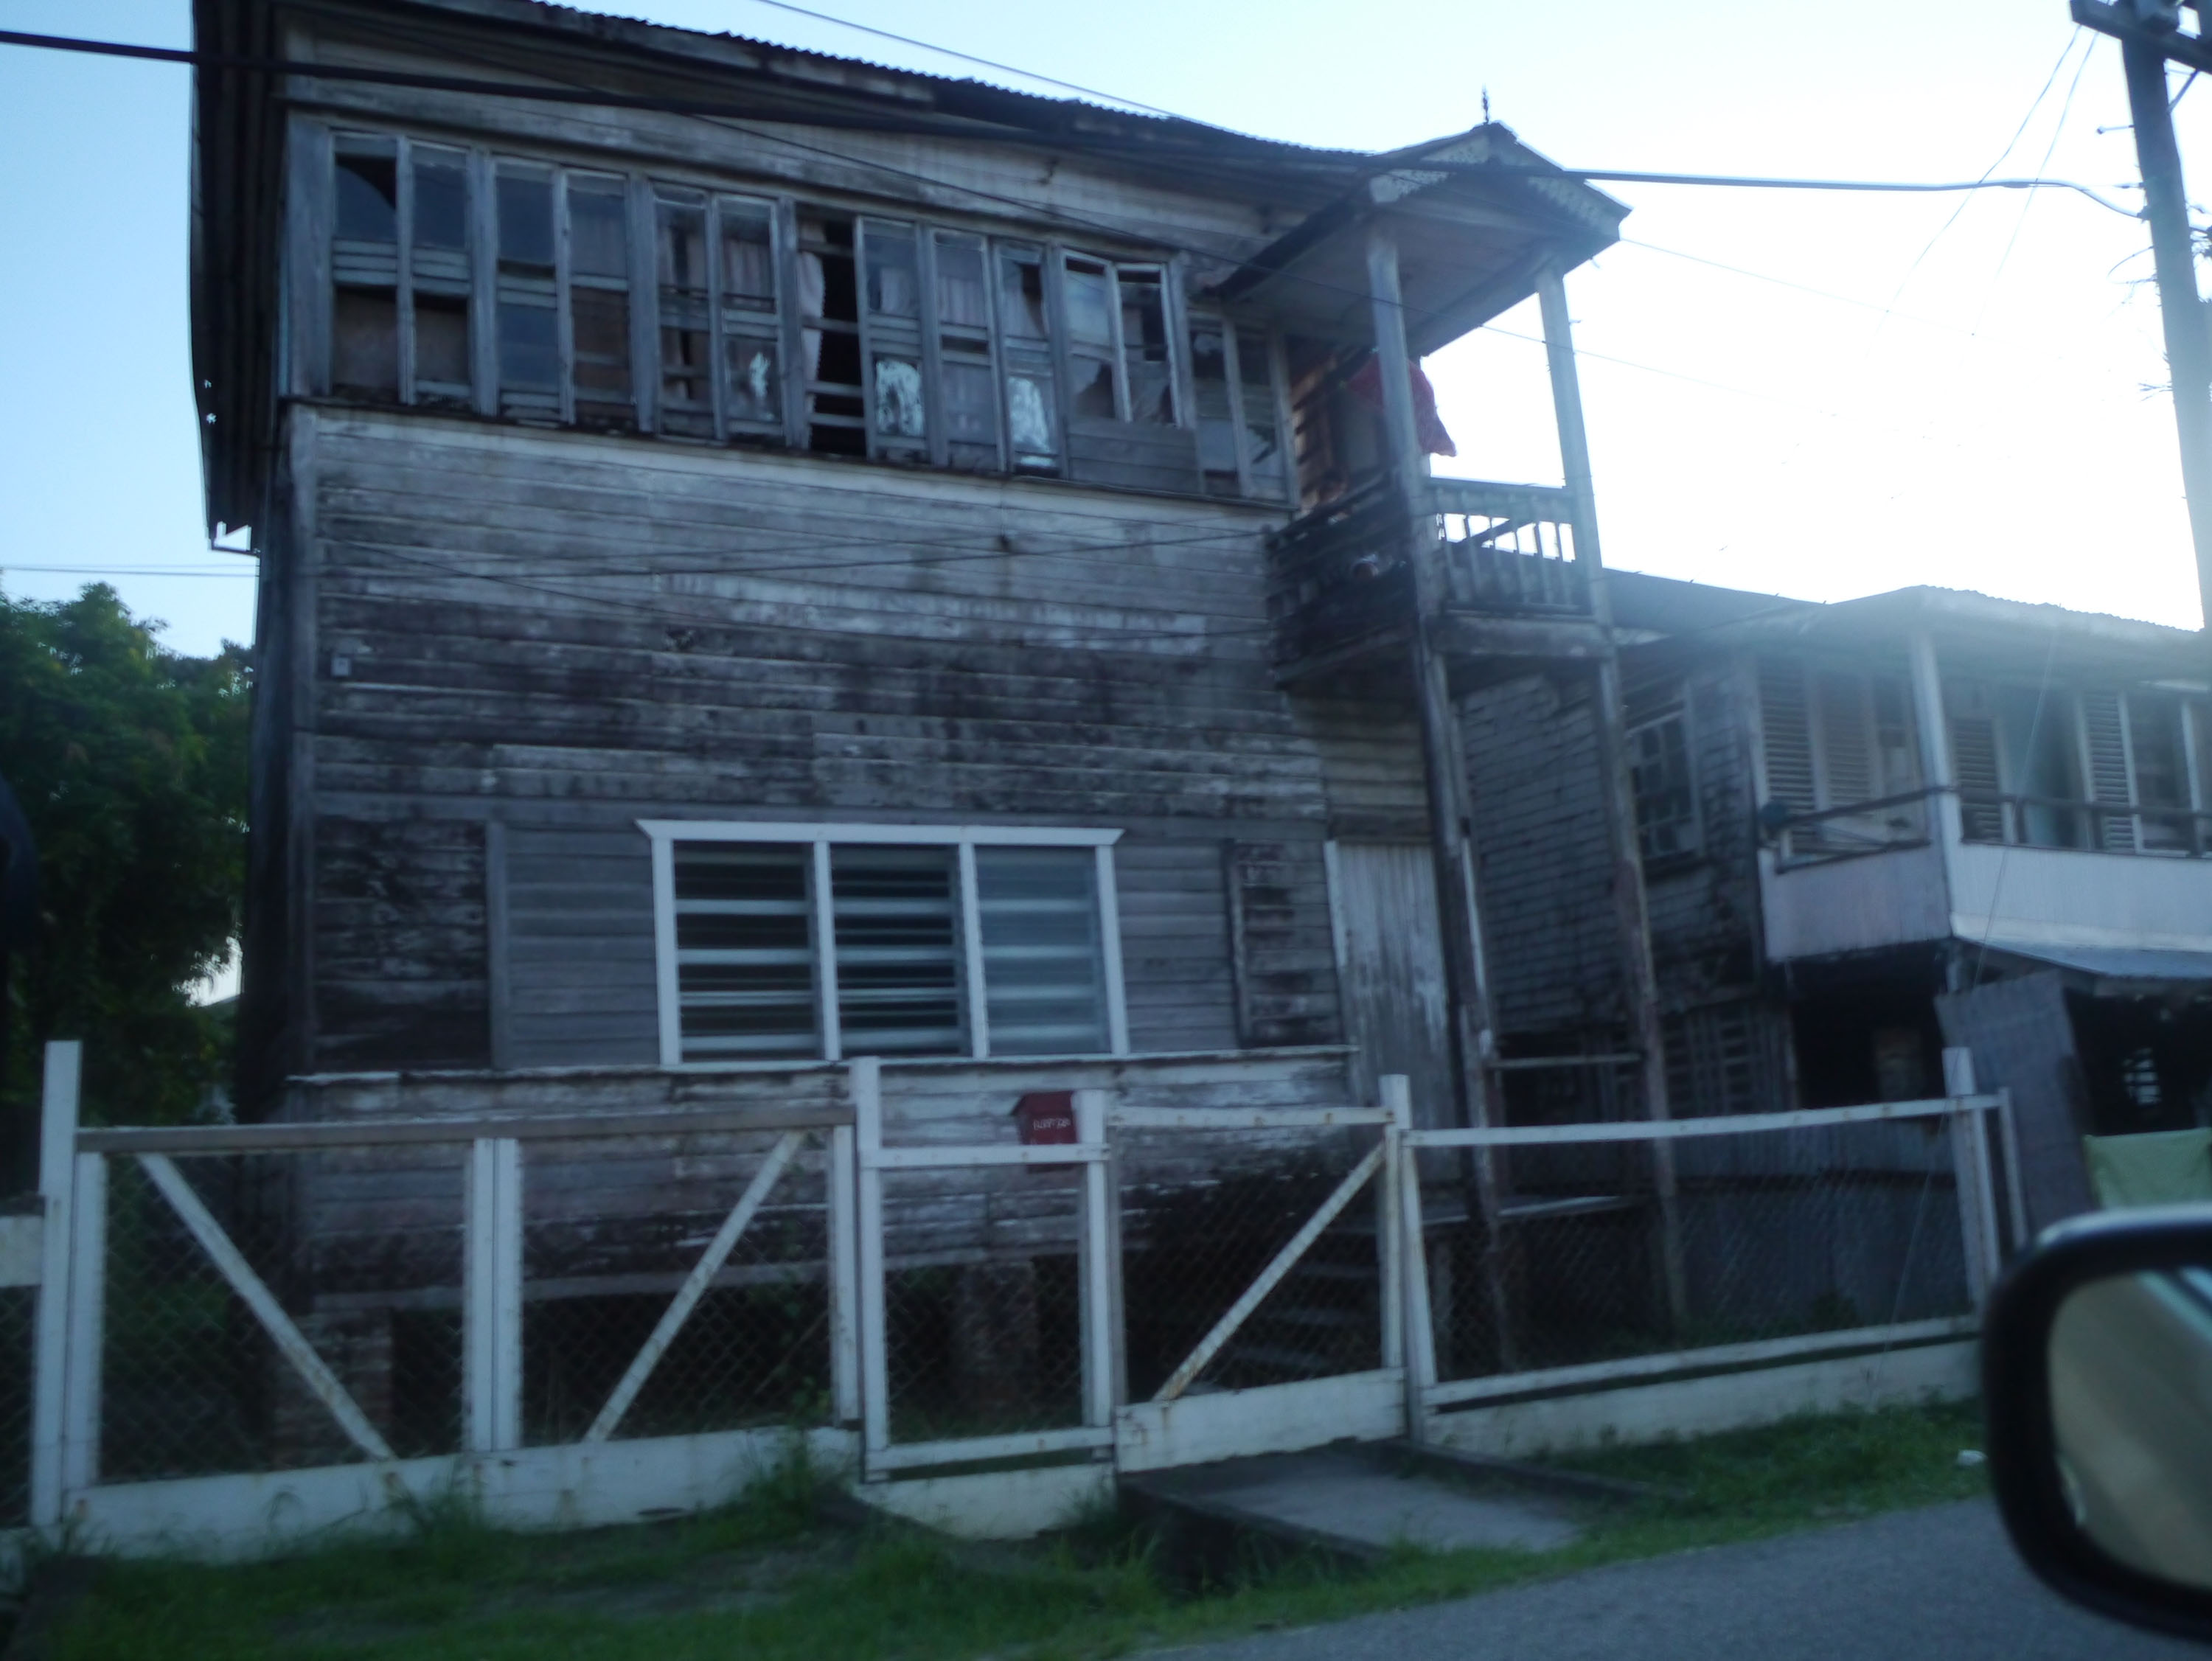 City to tear down 52 derelict buildings – Stabroek News Guyana Flat House Design In Concrete on flat house in canada, flat houses us, flat house in cambodia, flat houses in spain, flat house in latvia, flat houses in trinidad, flat house with garage, flat house in singapore, flat houses in london, flat house design,